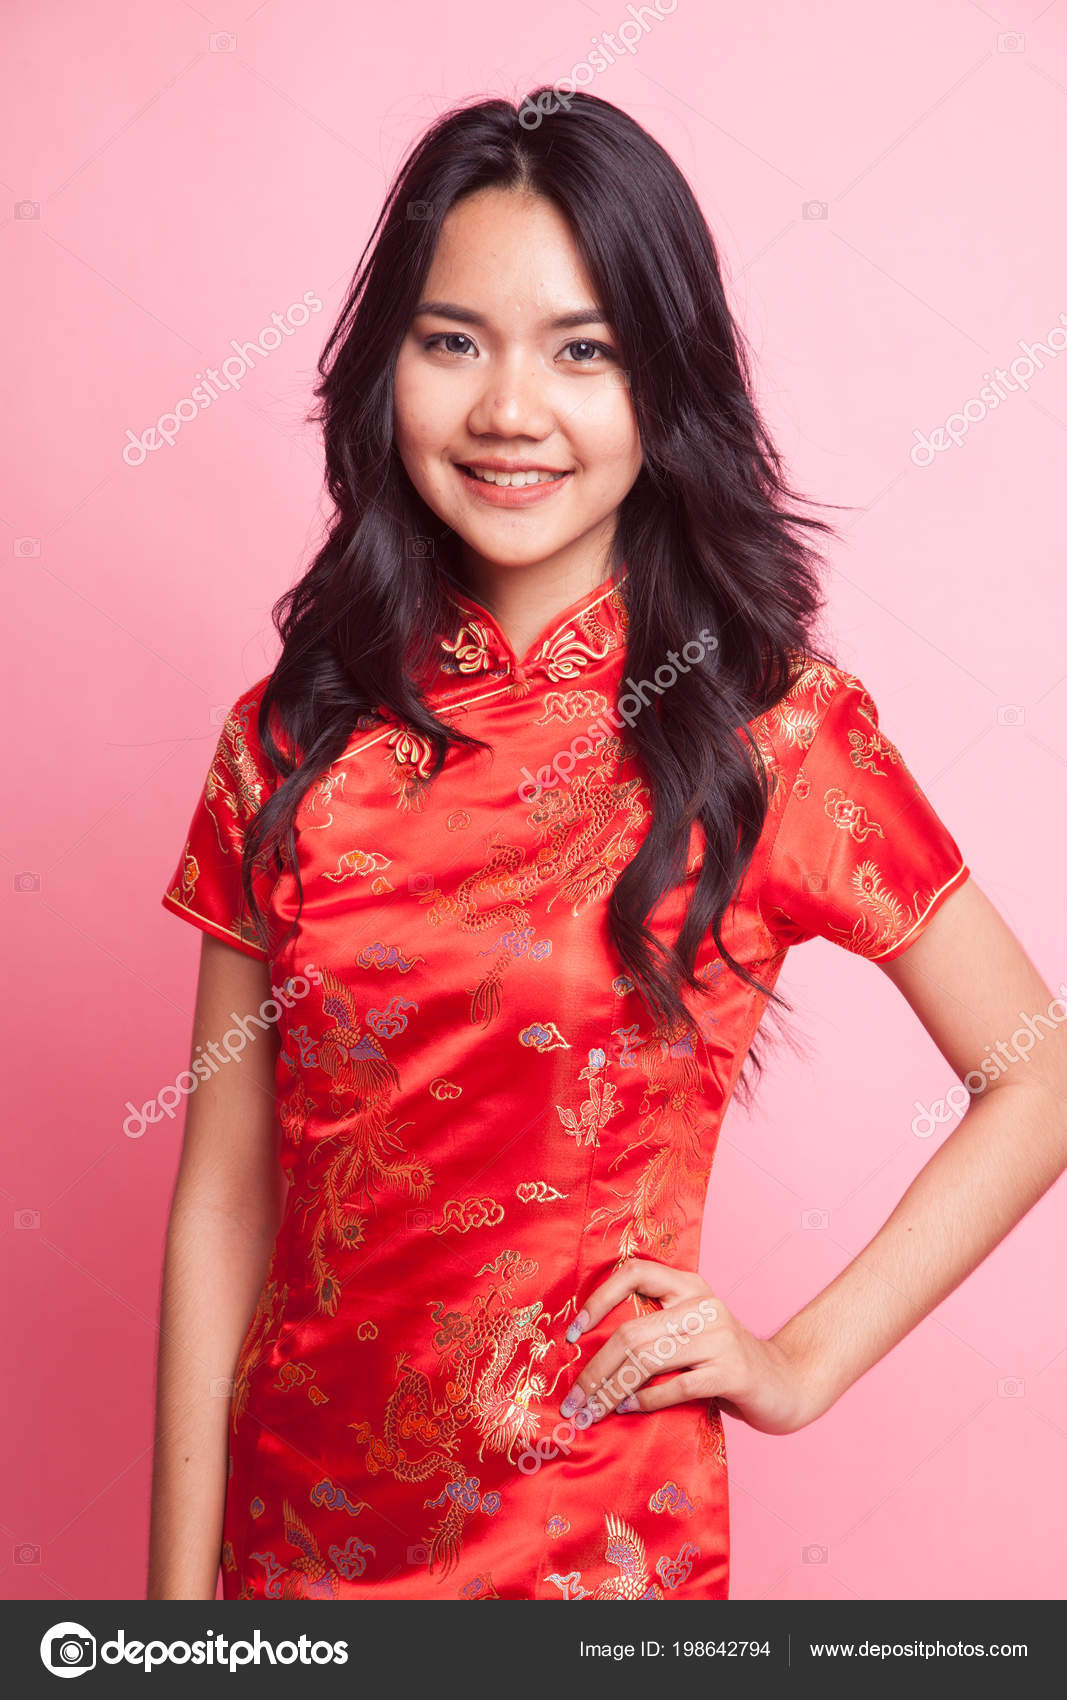 4893d8ea4 Cute Asian Girl Chinese Red Cheongsam Dress Pink Background — Stock Photo